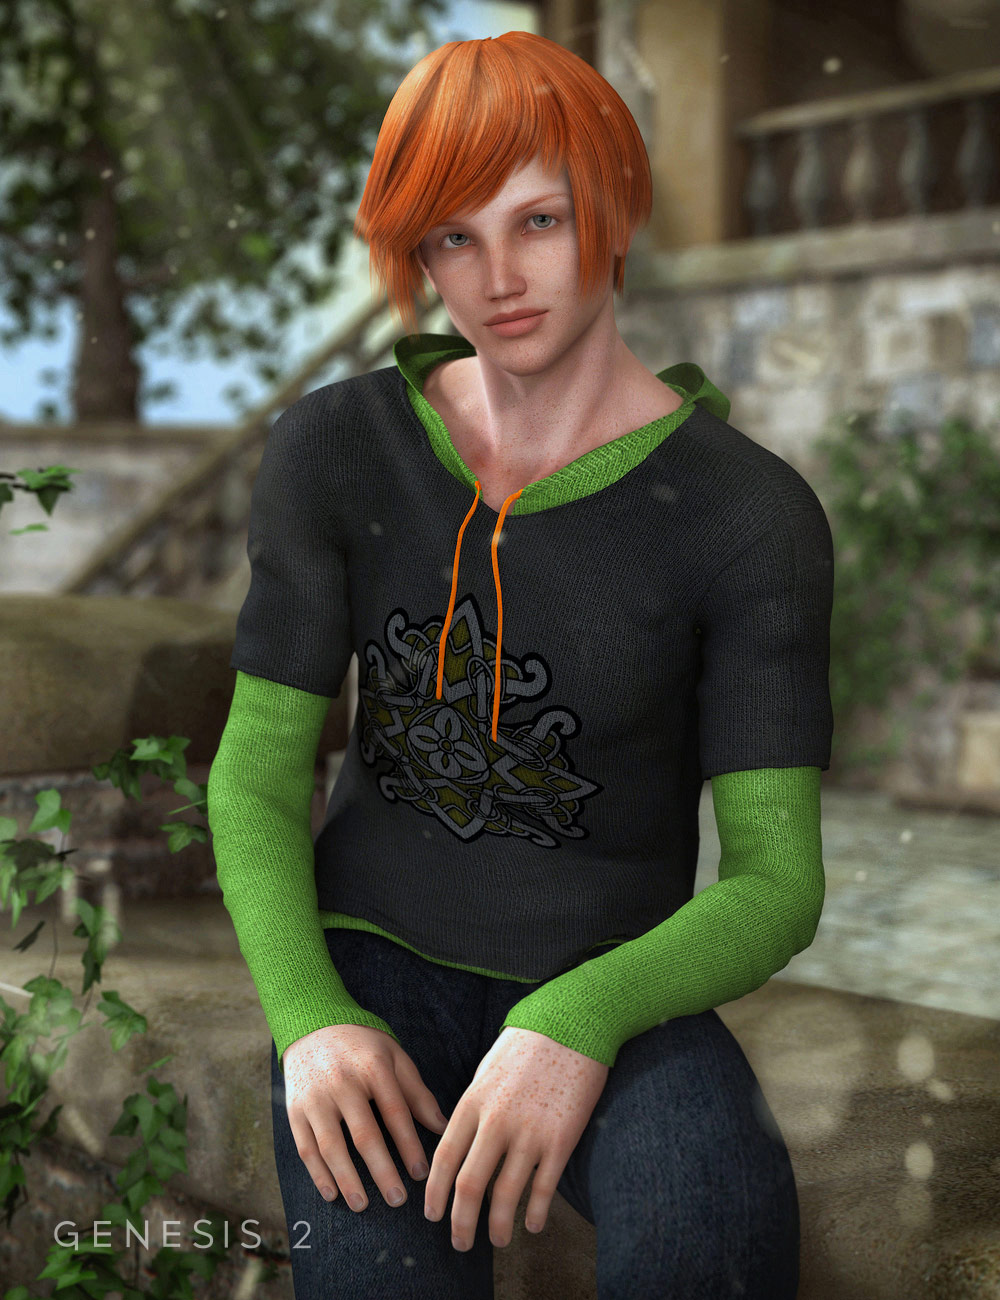 Colin by: CountessJessaii, 3D Models by Daz 3D